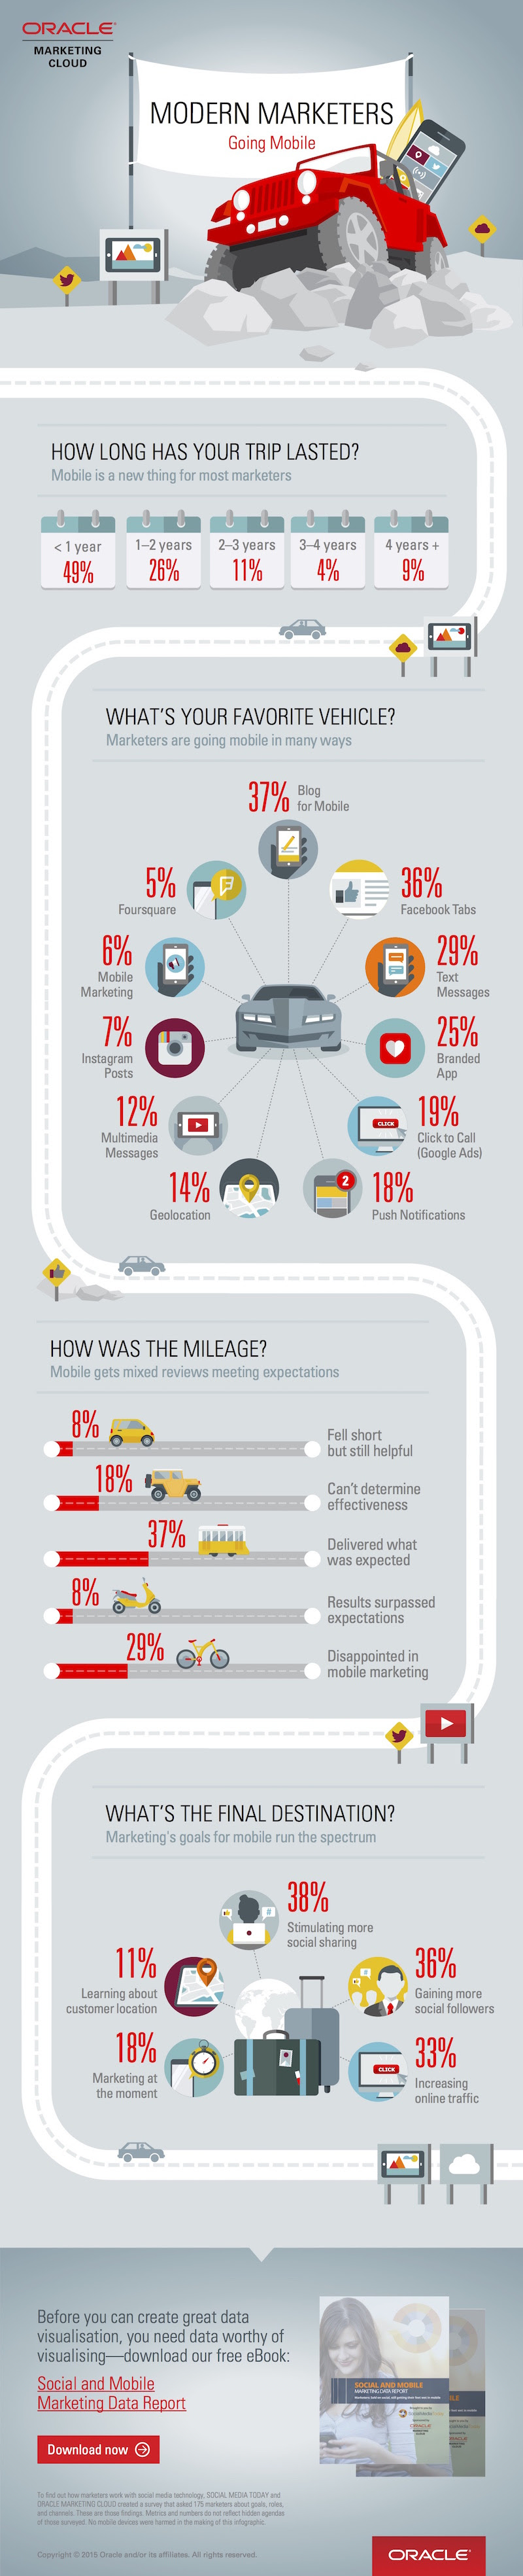 How Marketers Are Using Mobile - #infographic